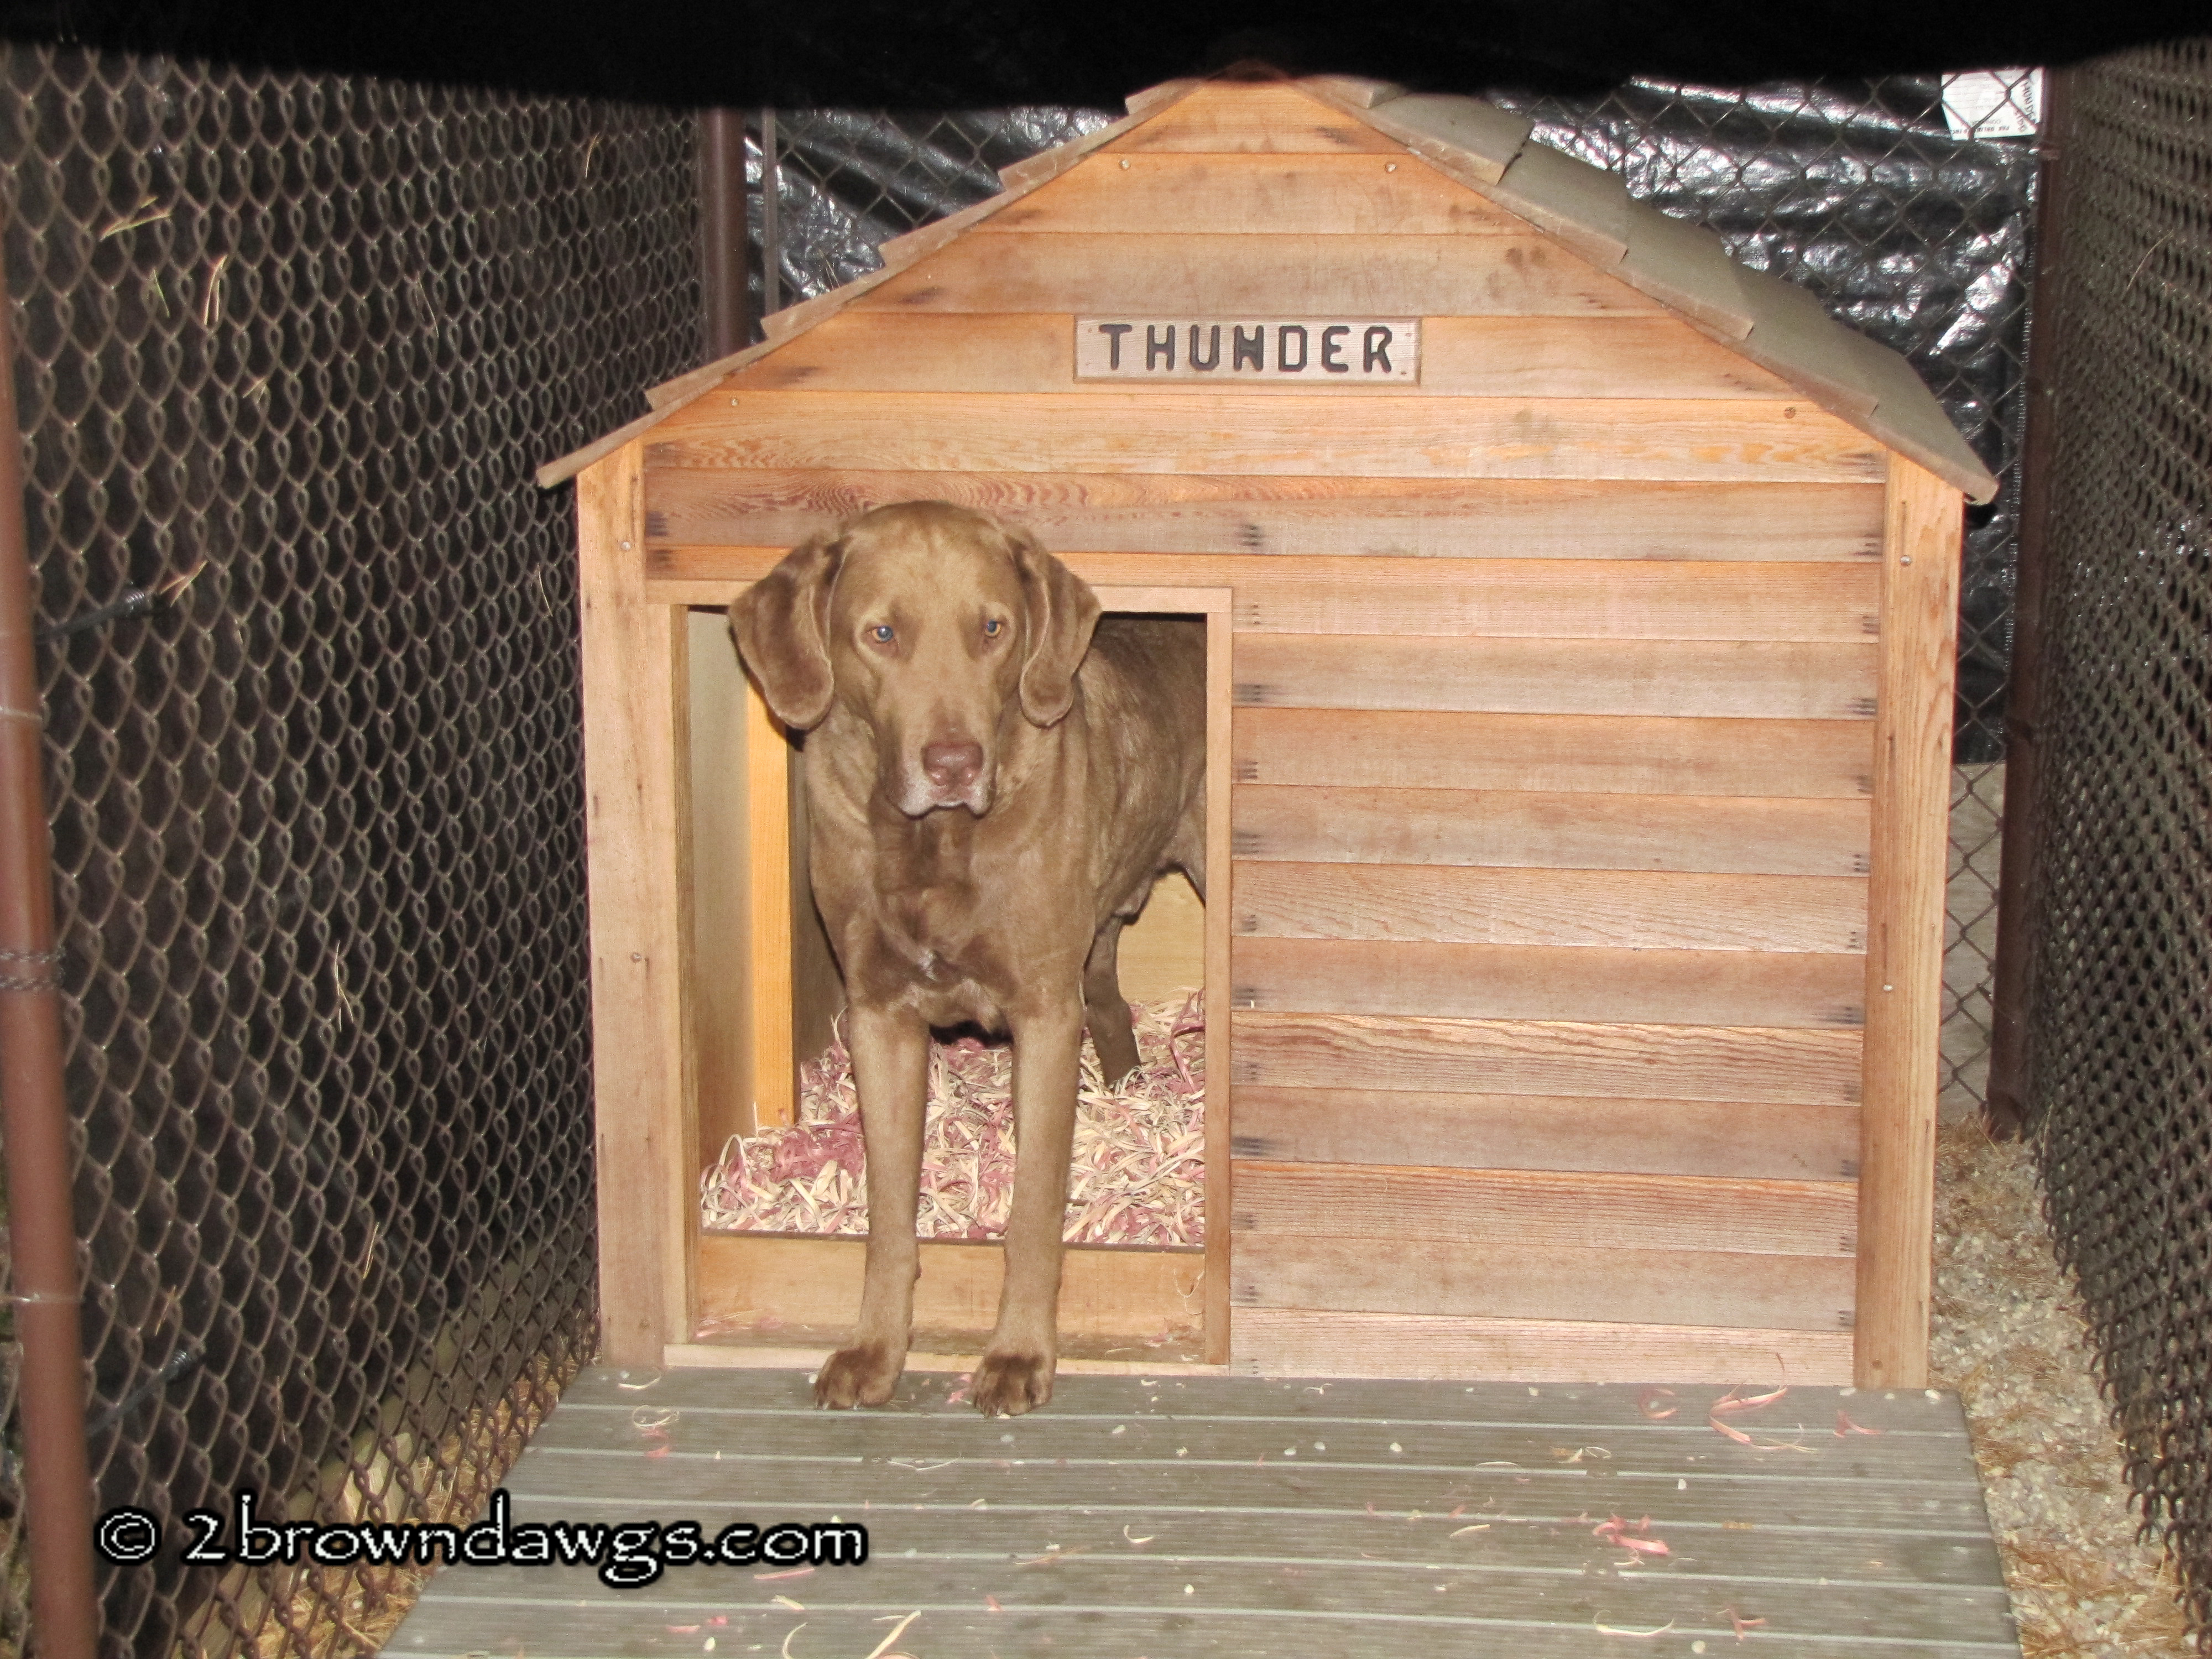 Getting ready for winter 2 brown dawgs blog for Cedar shavings for dog kennels